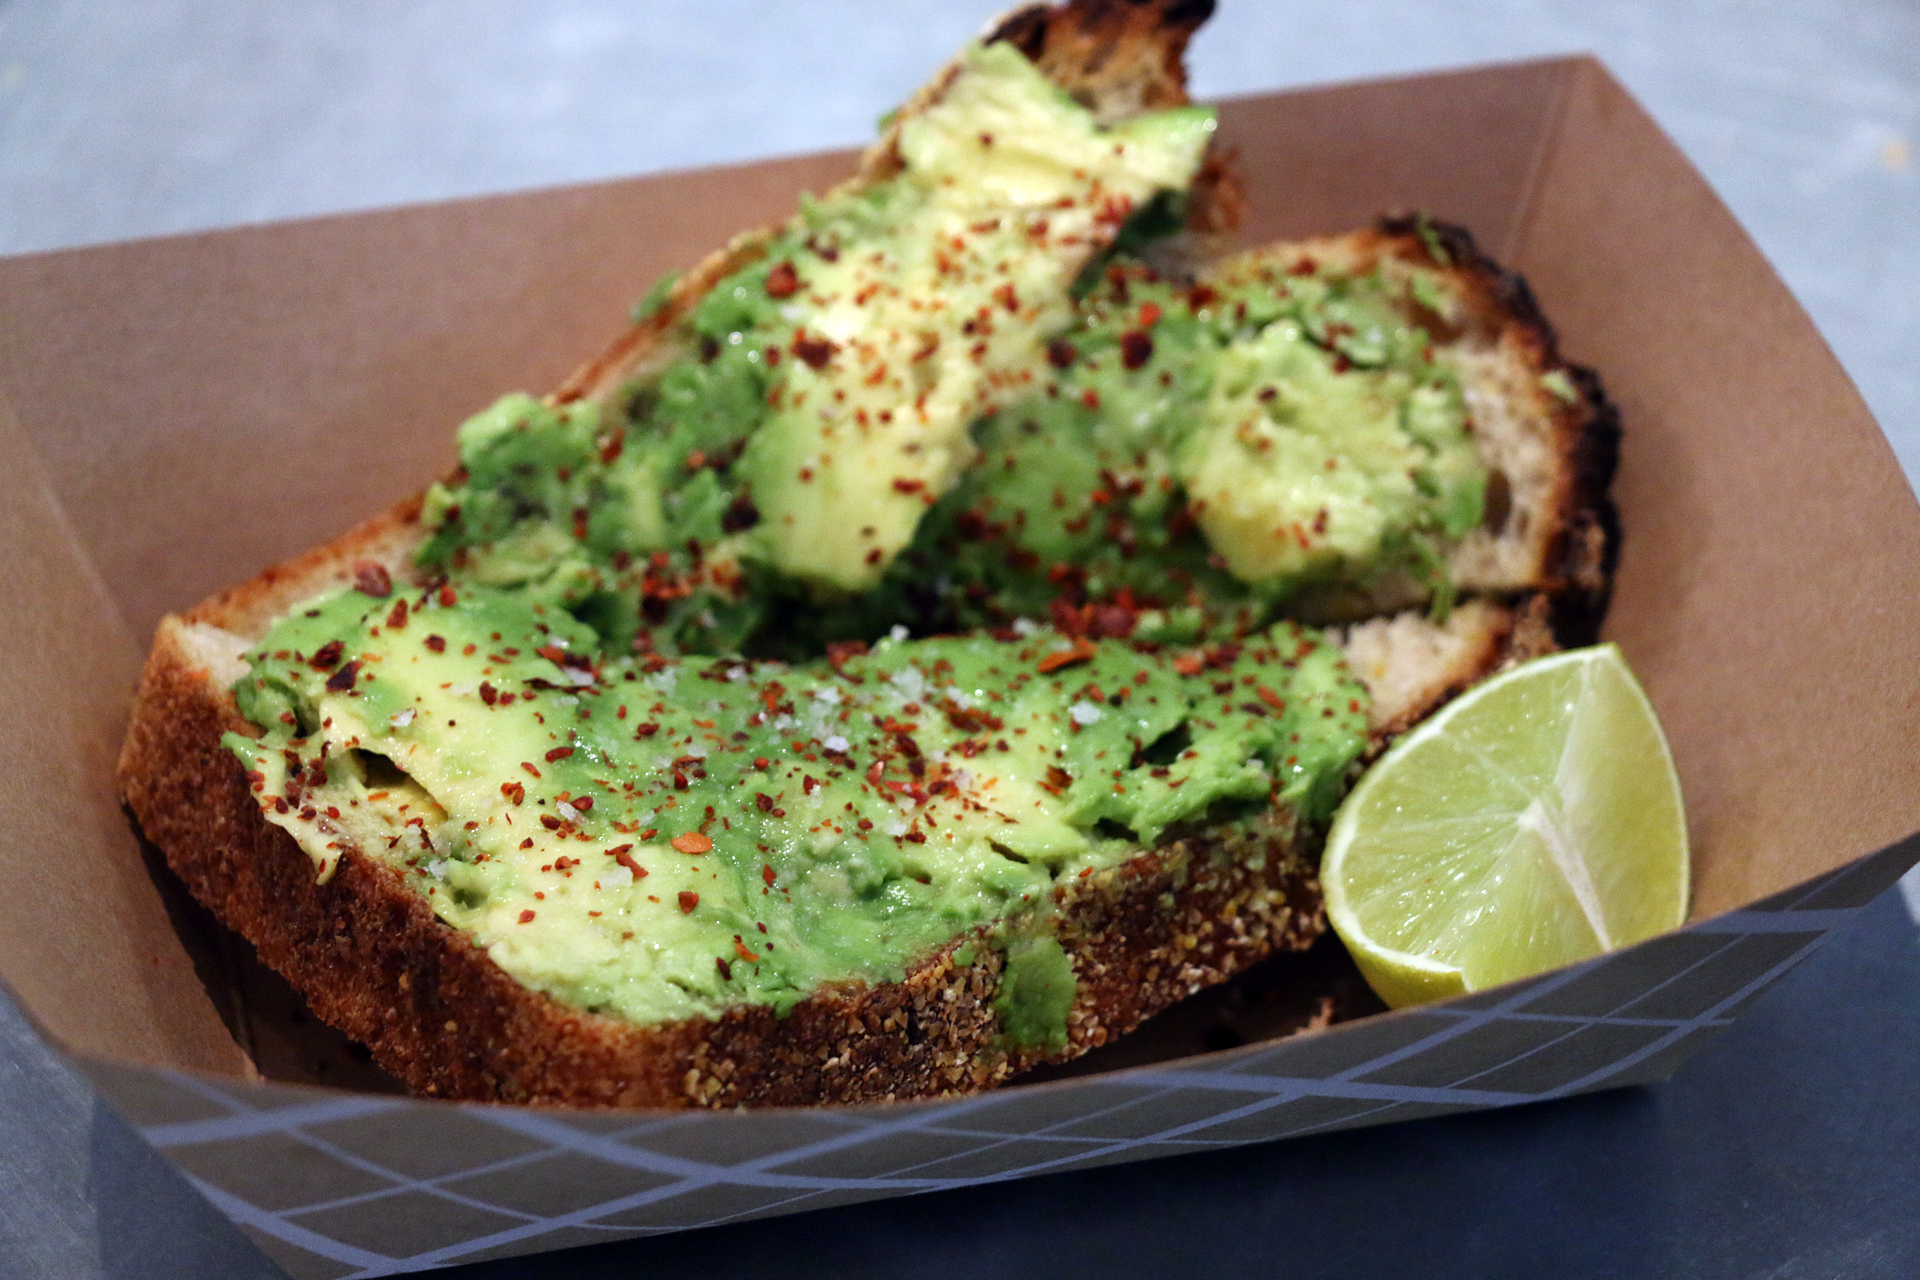 Avocado toast at Hudson.